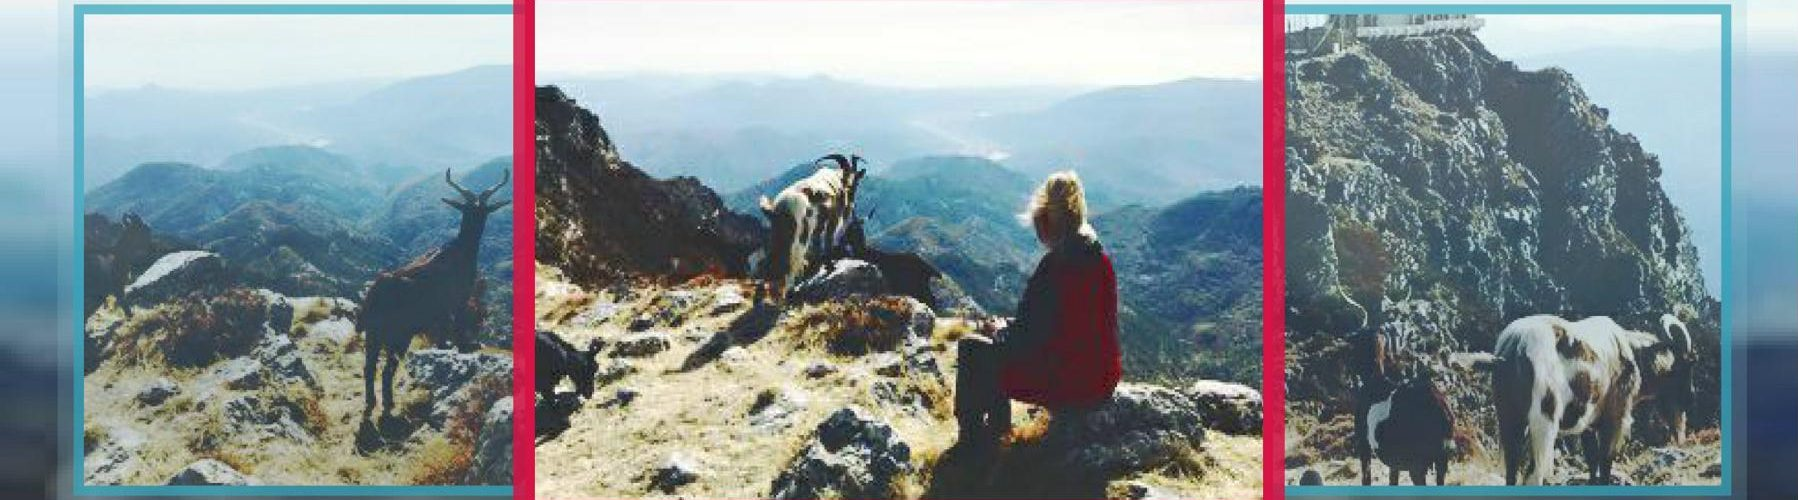 real riviera hiking judy churchill  The Esteron FRENCH ALPS